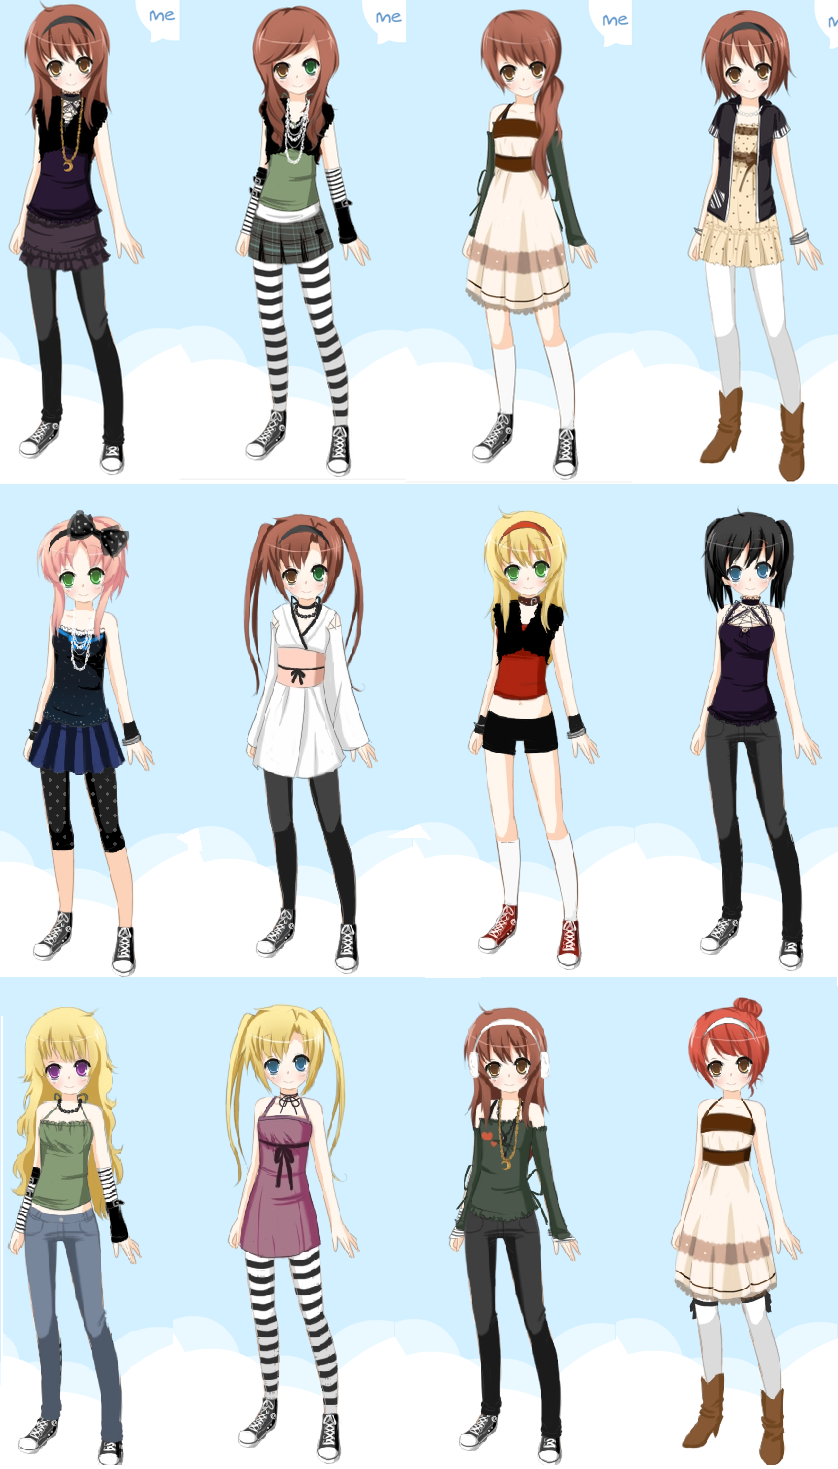 anime girl dress up by mimi8 on DeviantArt